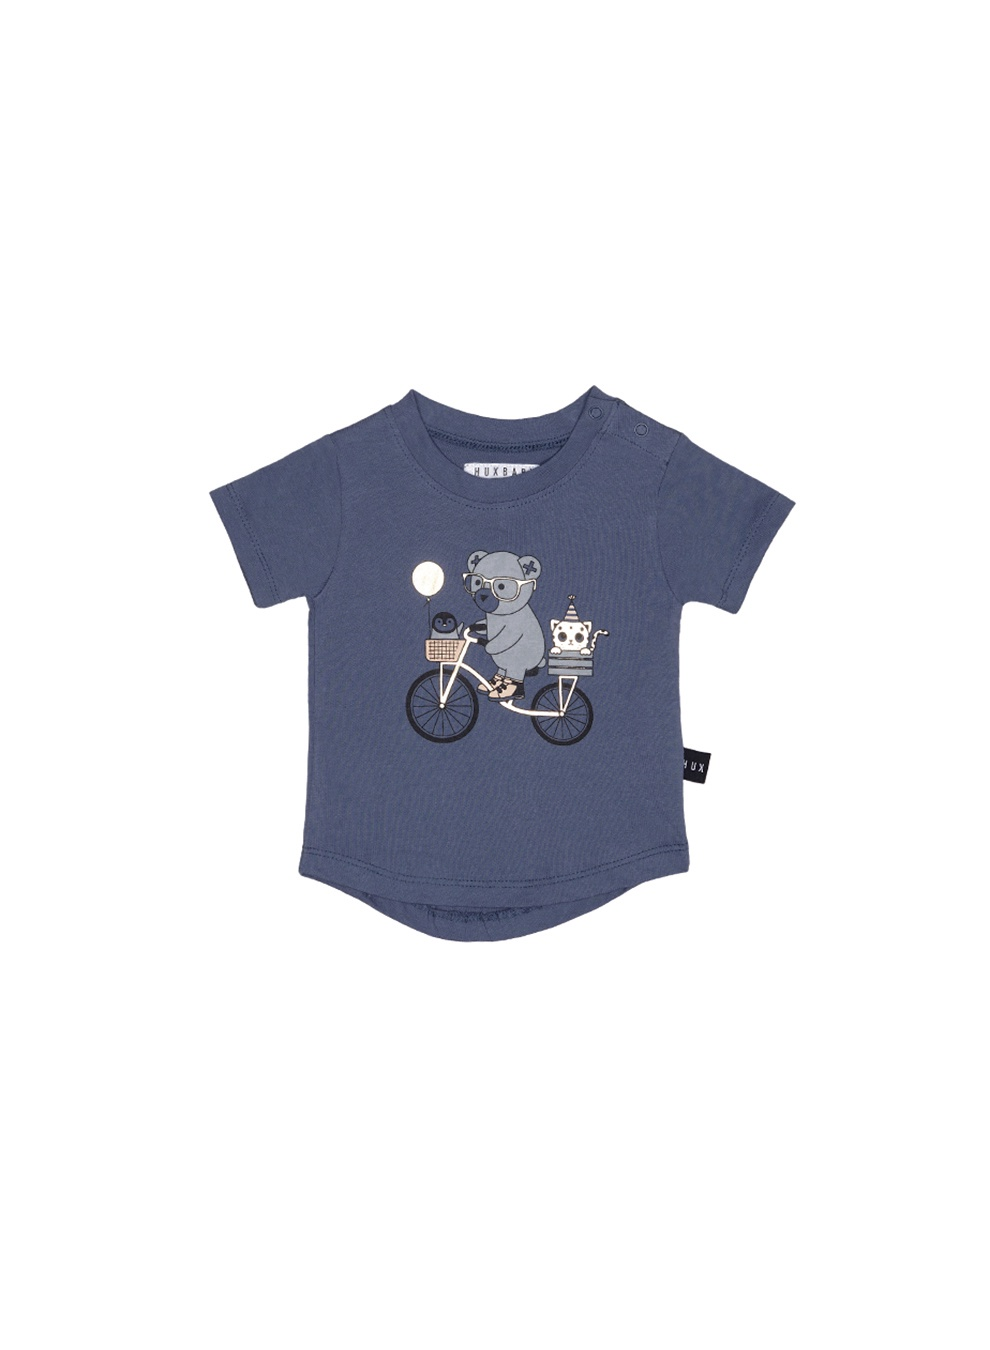 INDIGO BIKE T SHIRT